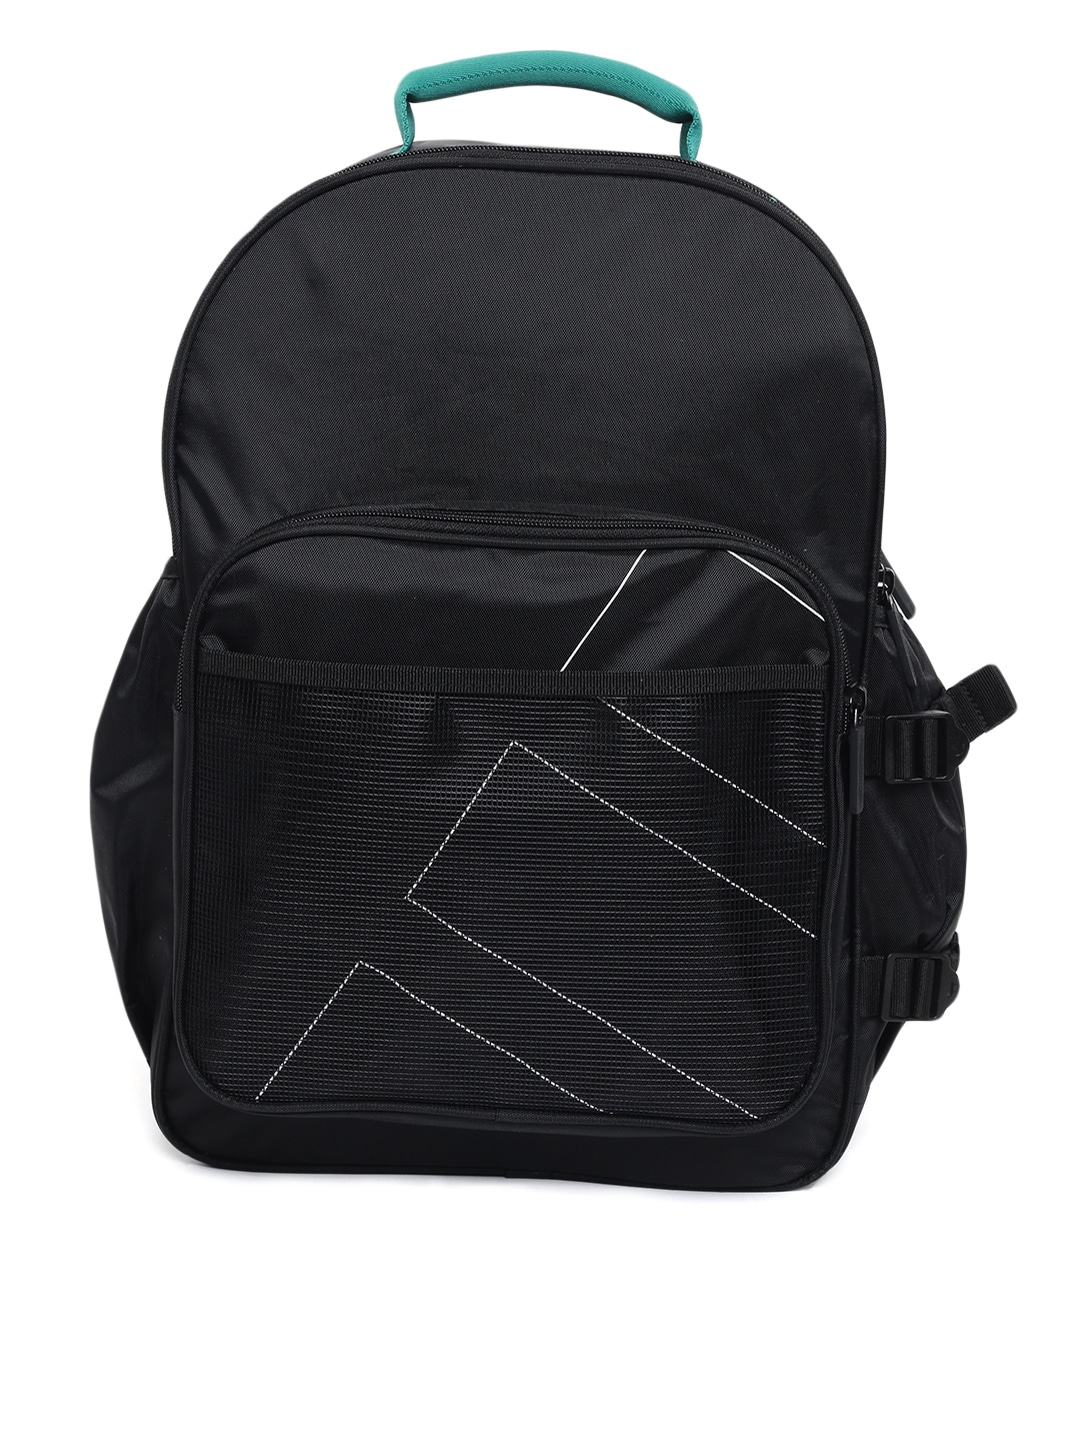 Adidas Eqt Tights Backpacks Jackets - Buy Adidas Eqt Tights Backpacks  Jackets online in India 3913b35303bf0